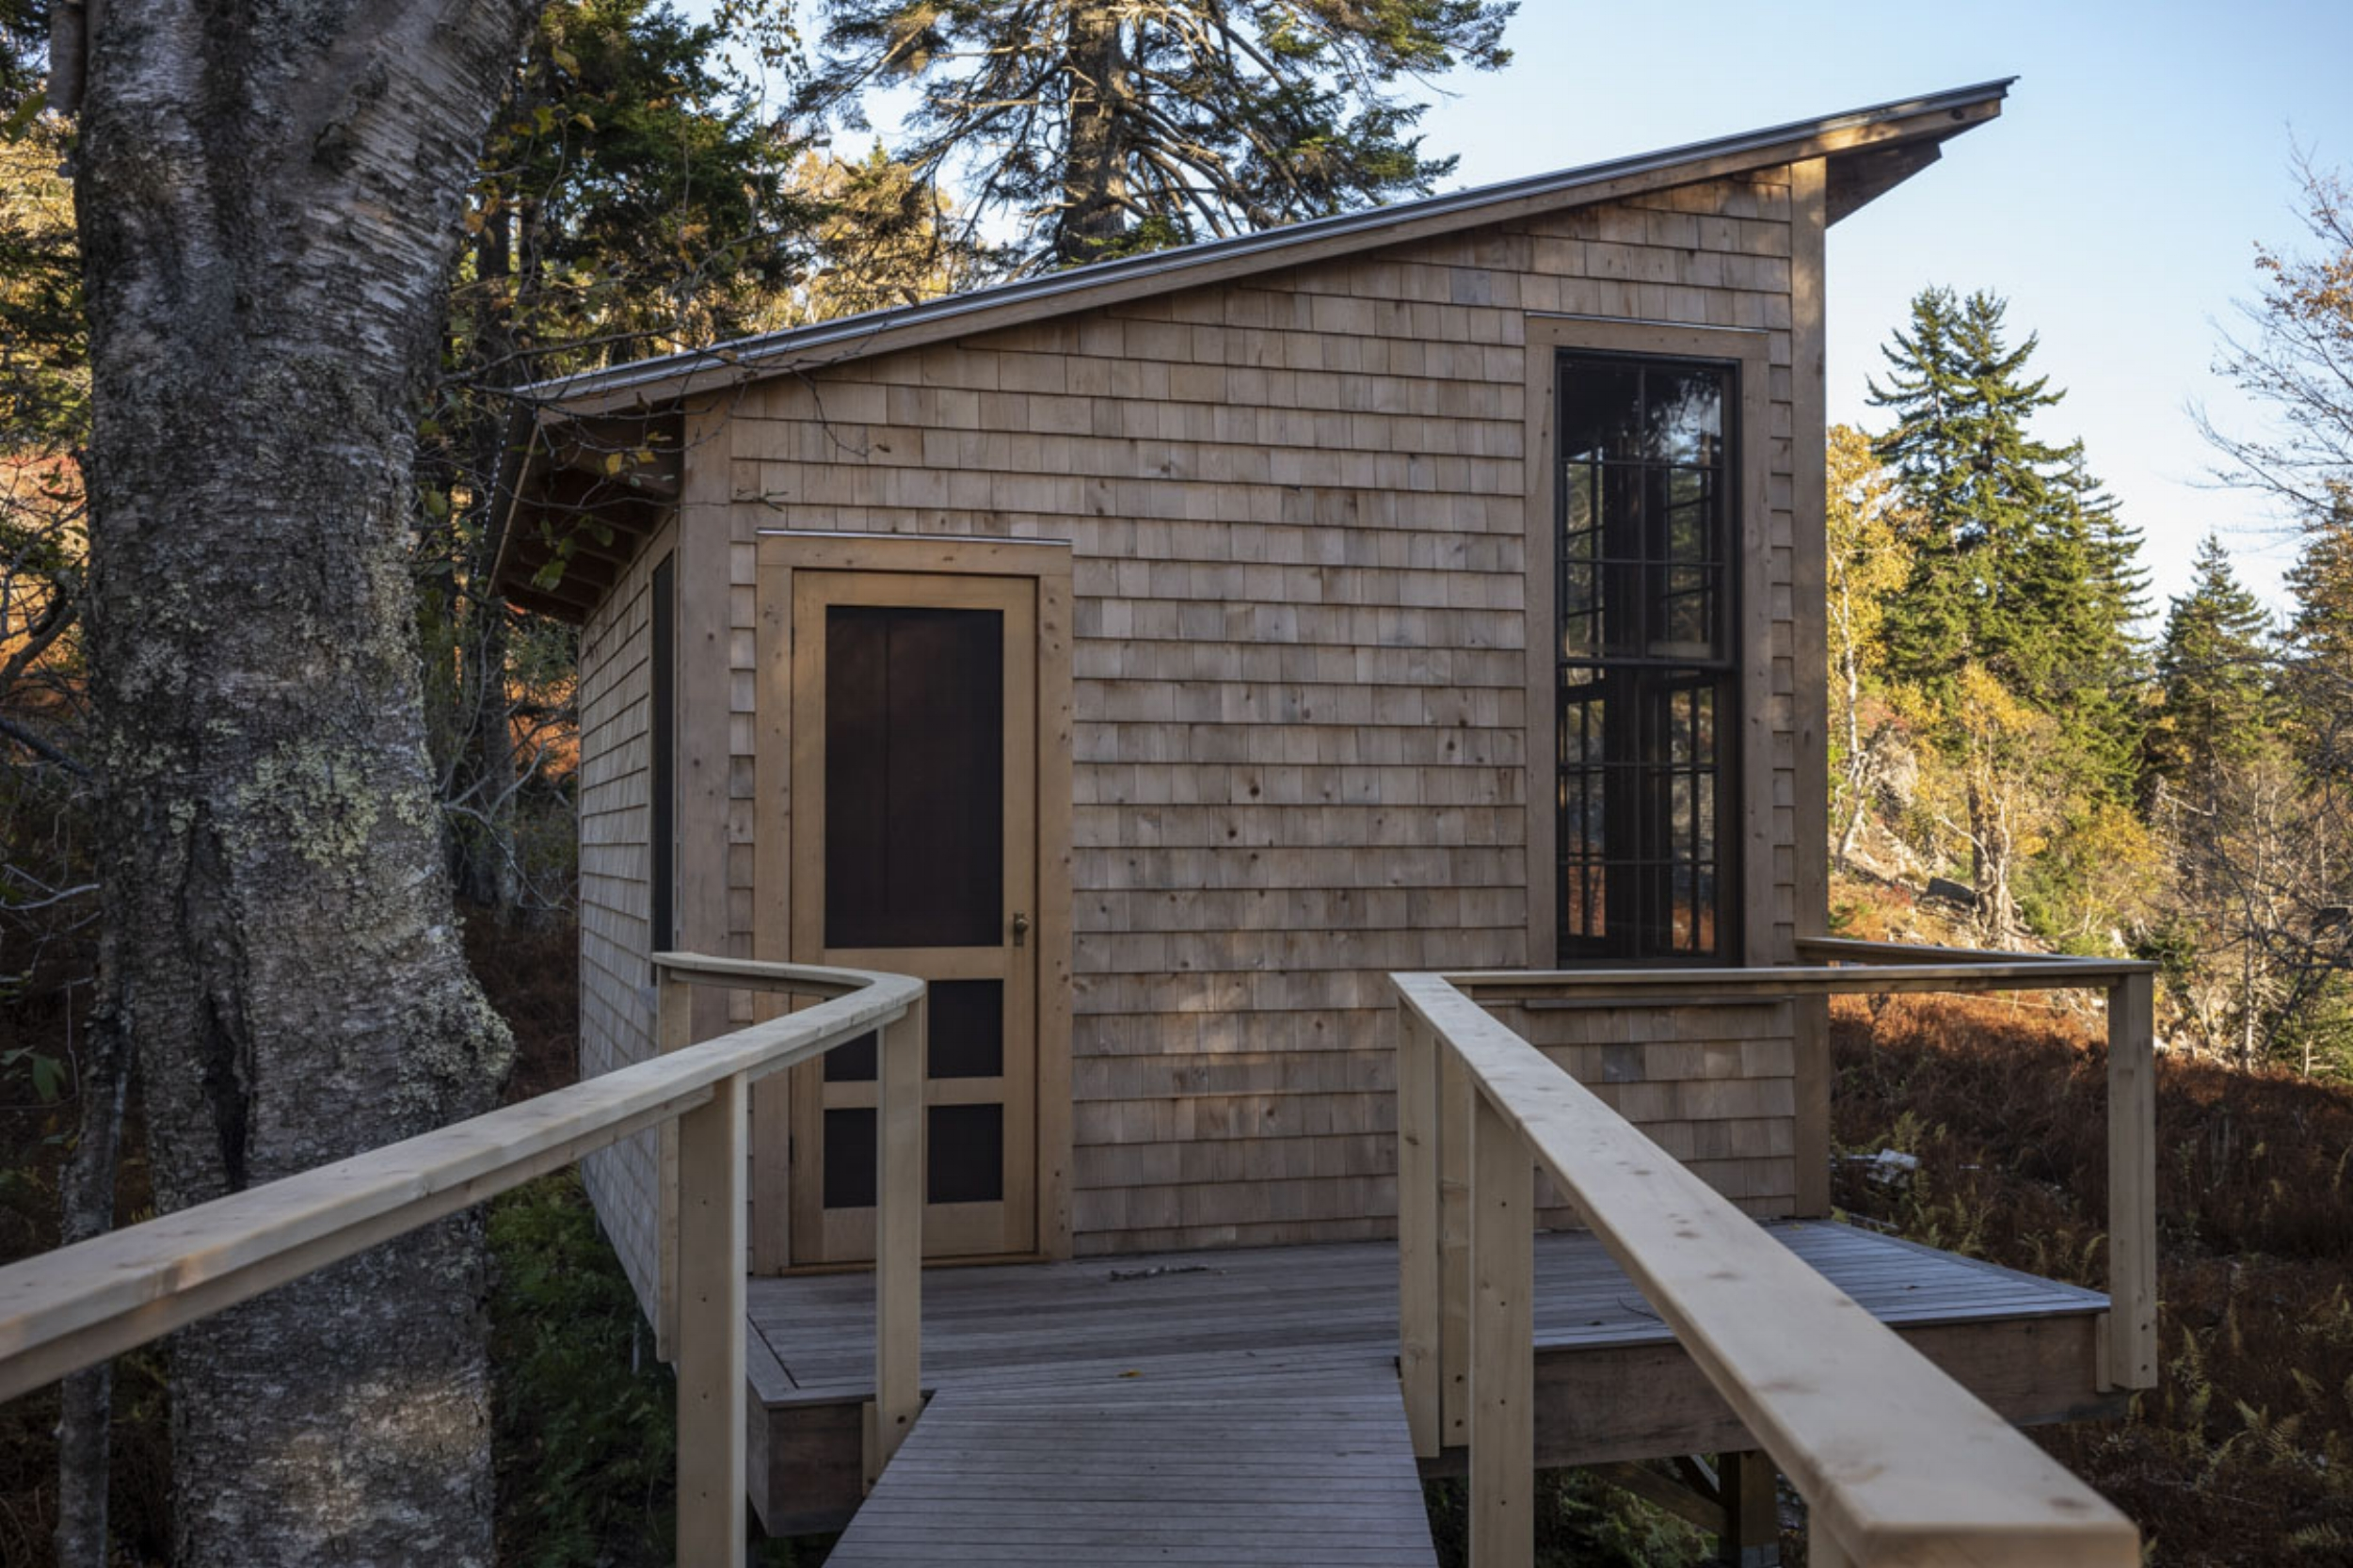 phopro-ext-cove_cabin_w_facade-150ppi8x5.jpg